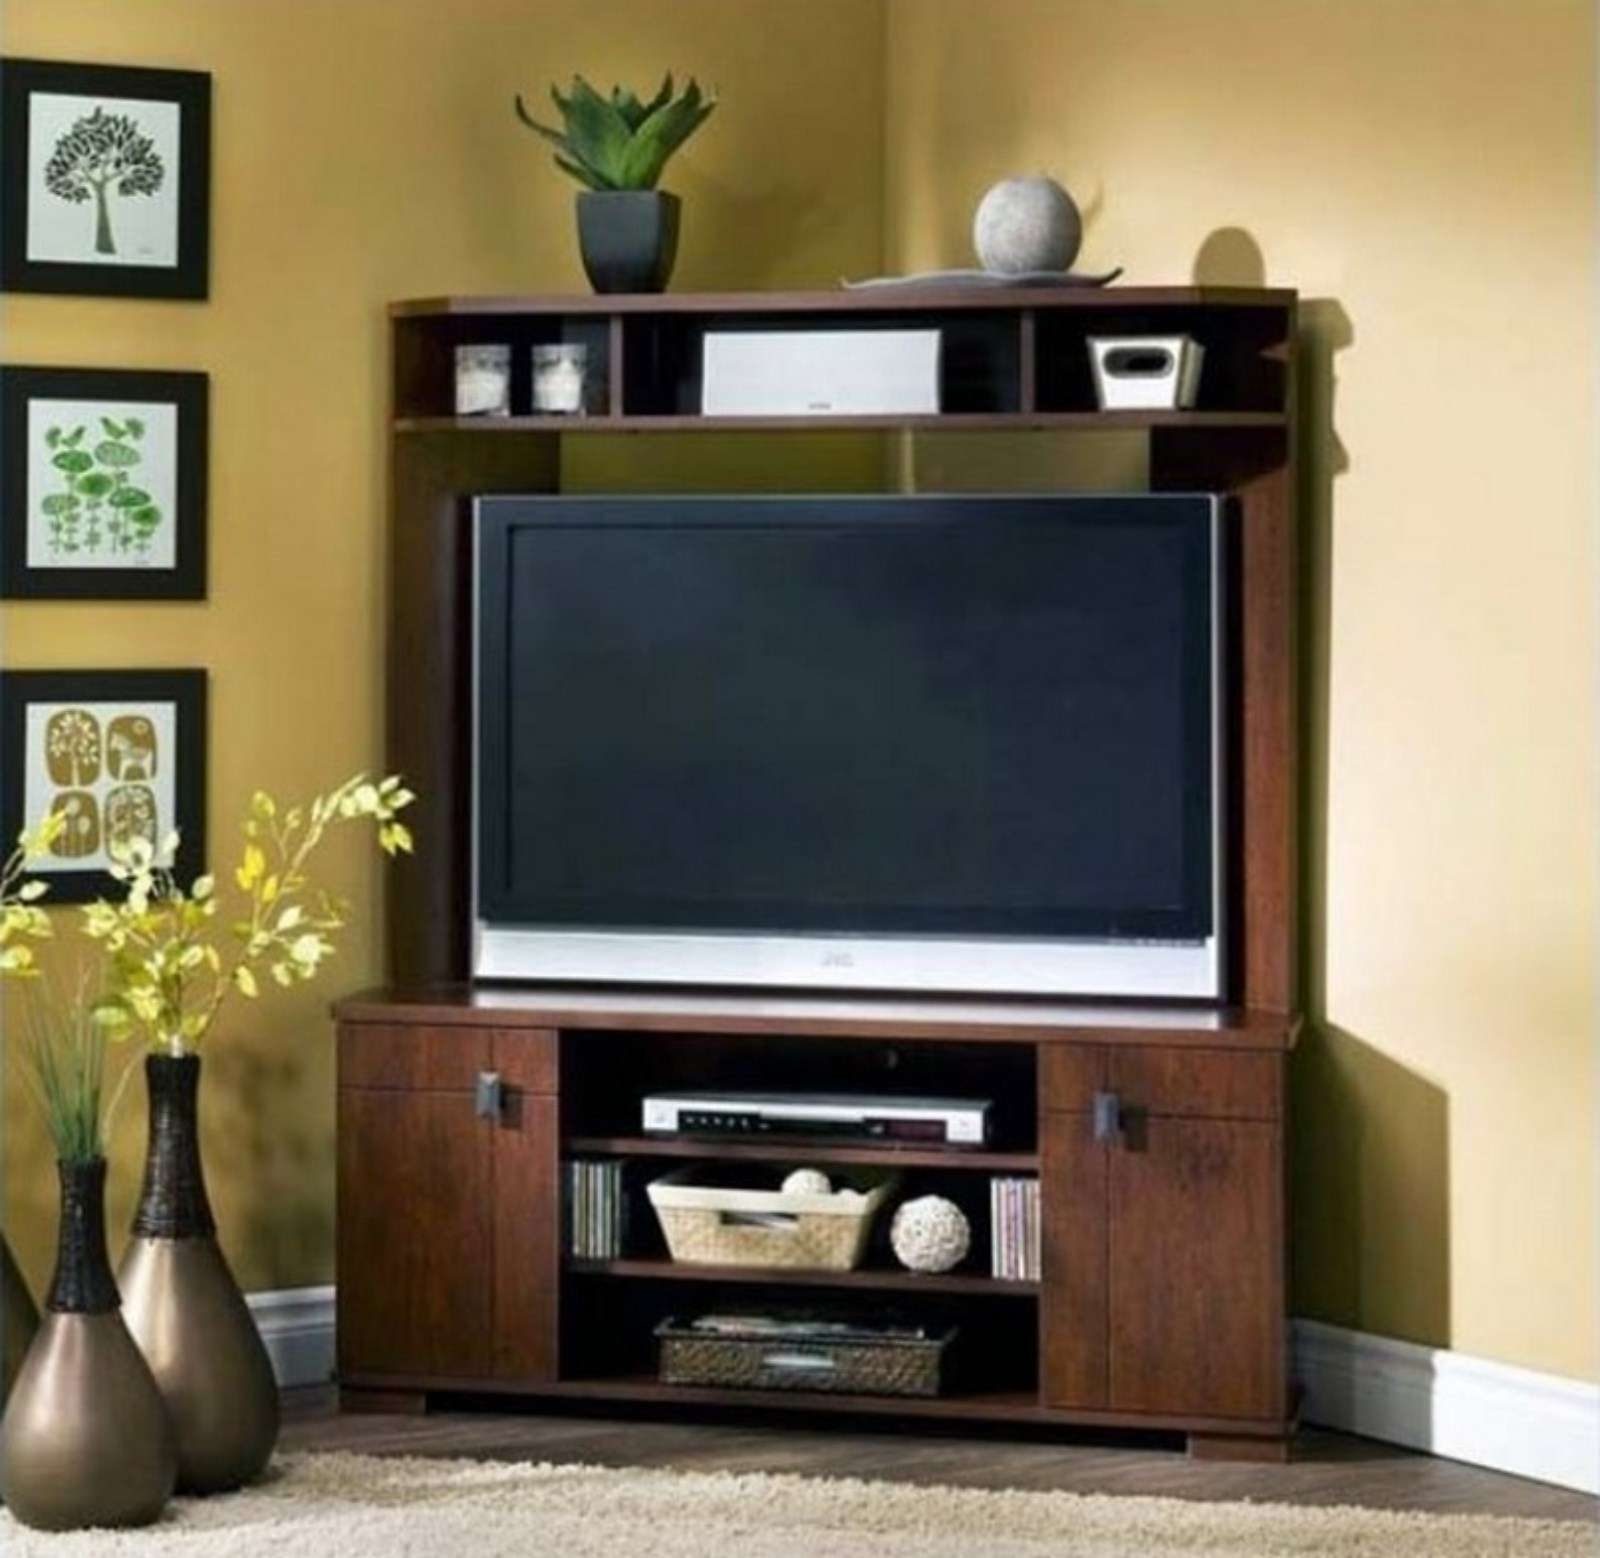 Tv Stand : 32 Unusual 55 Inch Corner Tv Stand With Mount Images Within Corner 55 Inch Tv Stands (View 11 of 15)